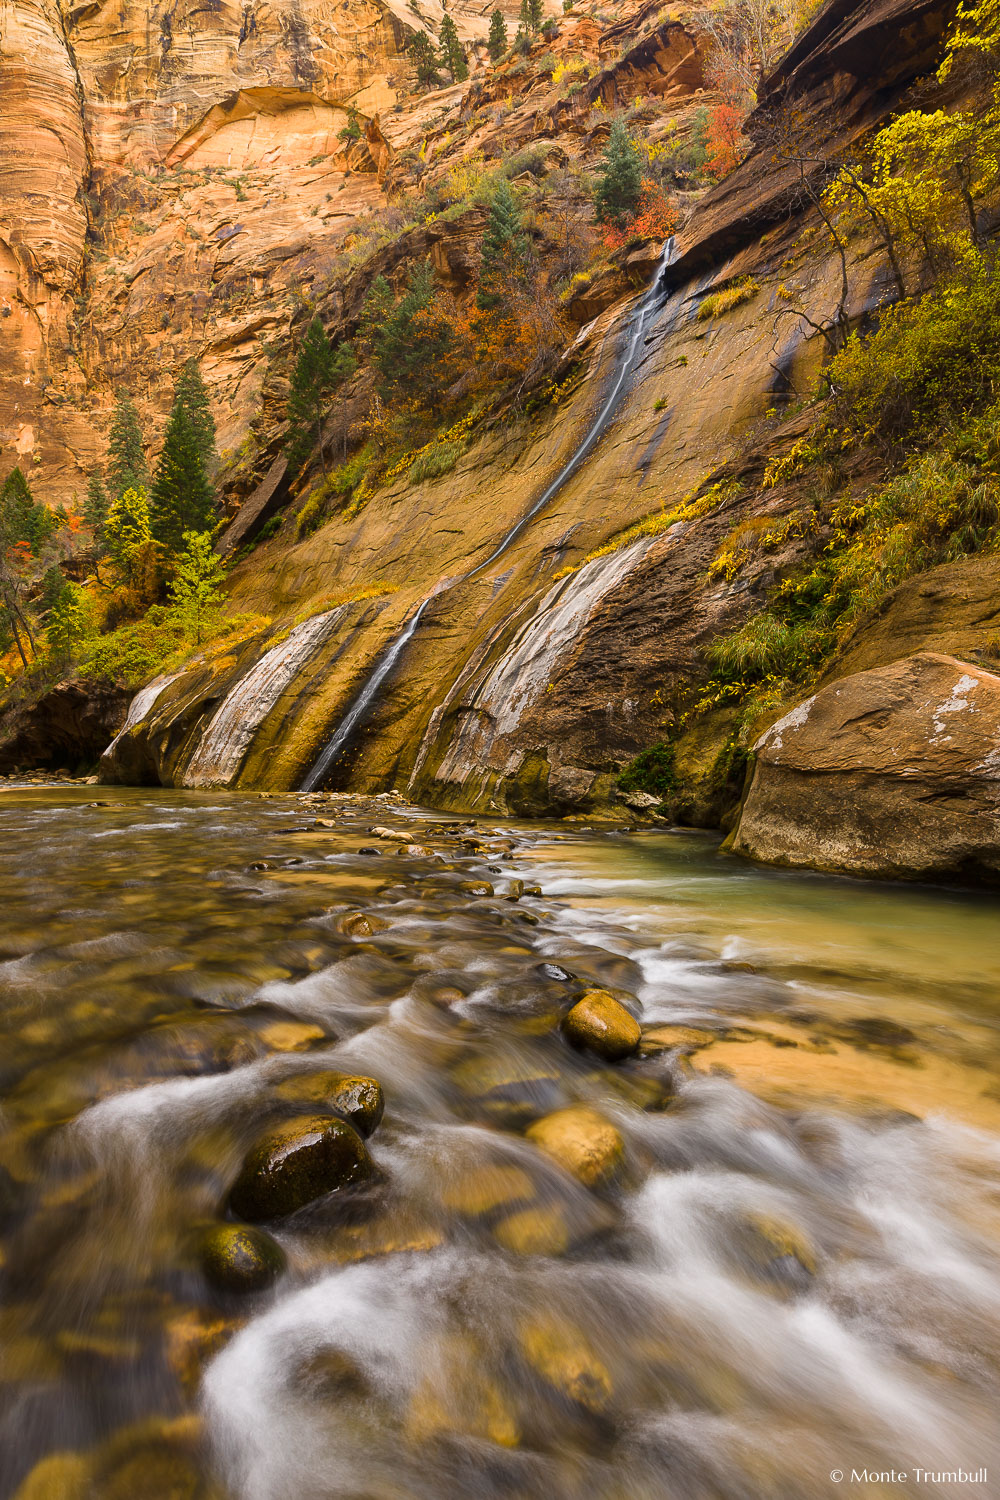 MT-20121108-113640-0006-Utah-Zion-National-Park-Narrows-fall-waterfall.jpg